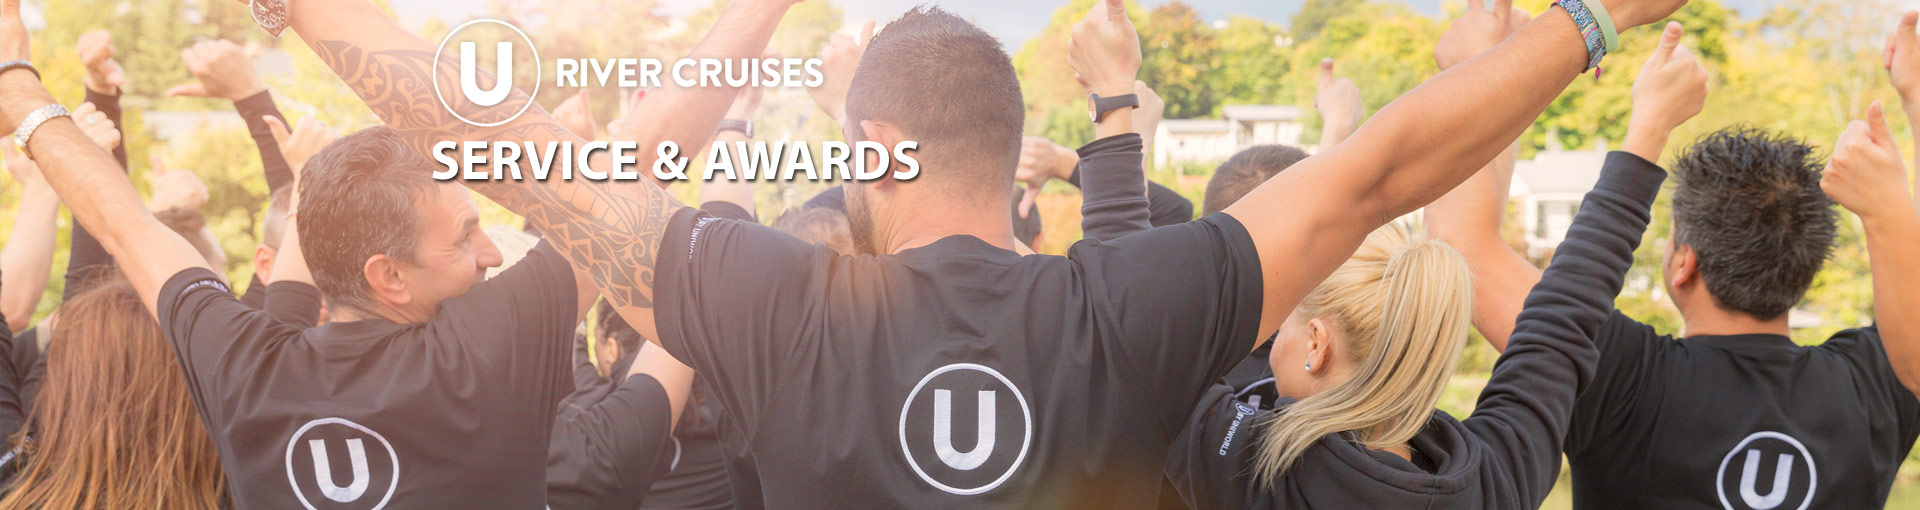 U by Uniworld Service and Awards